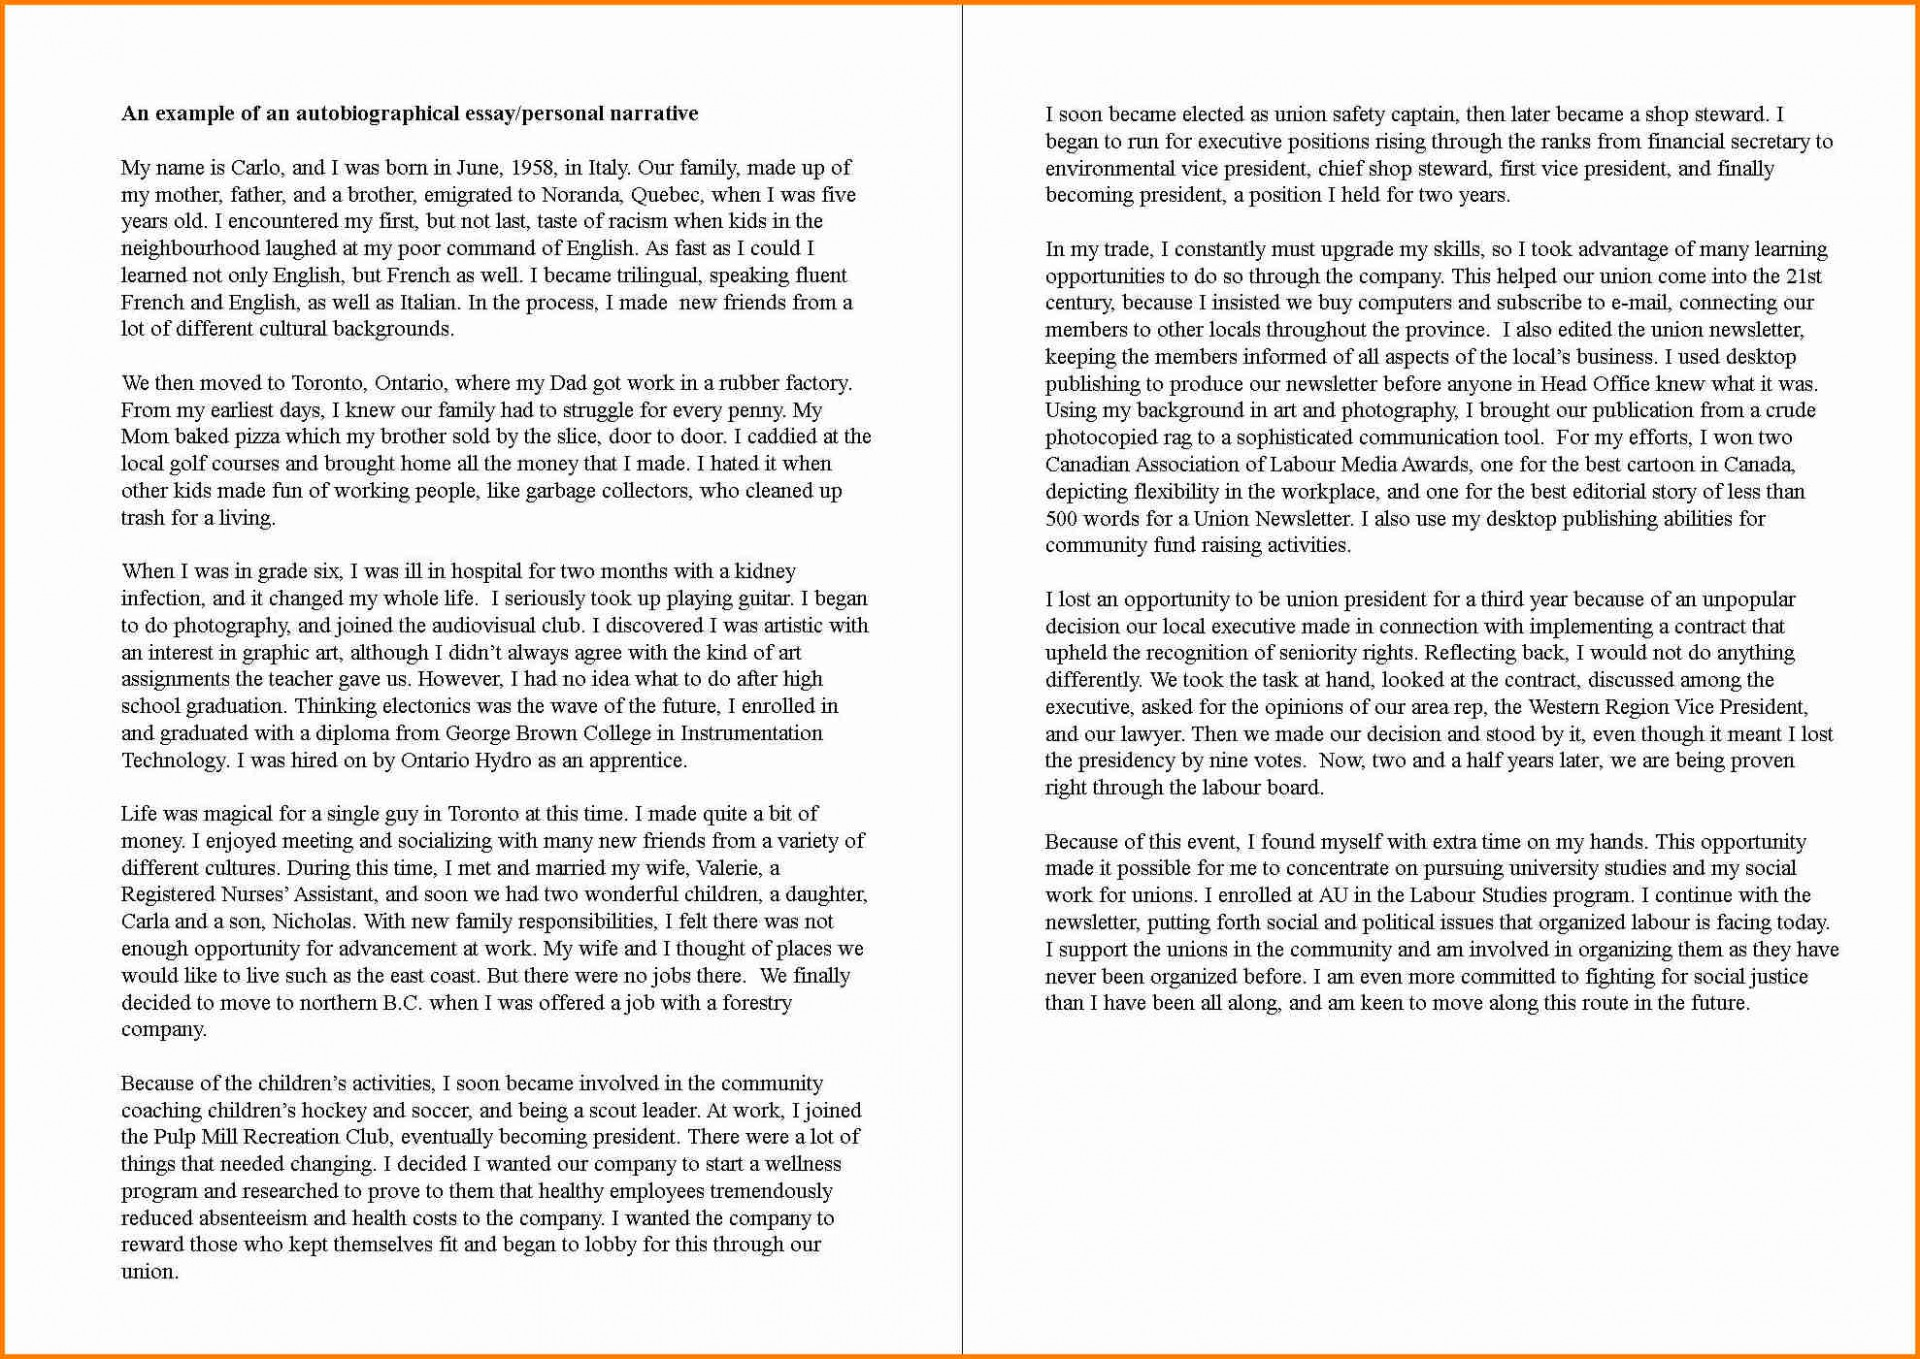 013 Biography Essay Example Brilliant Ideas Of With Impressive Conclusion Examples College Titles 1920